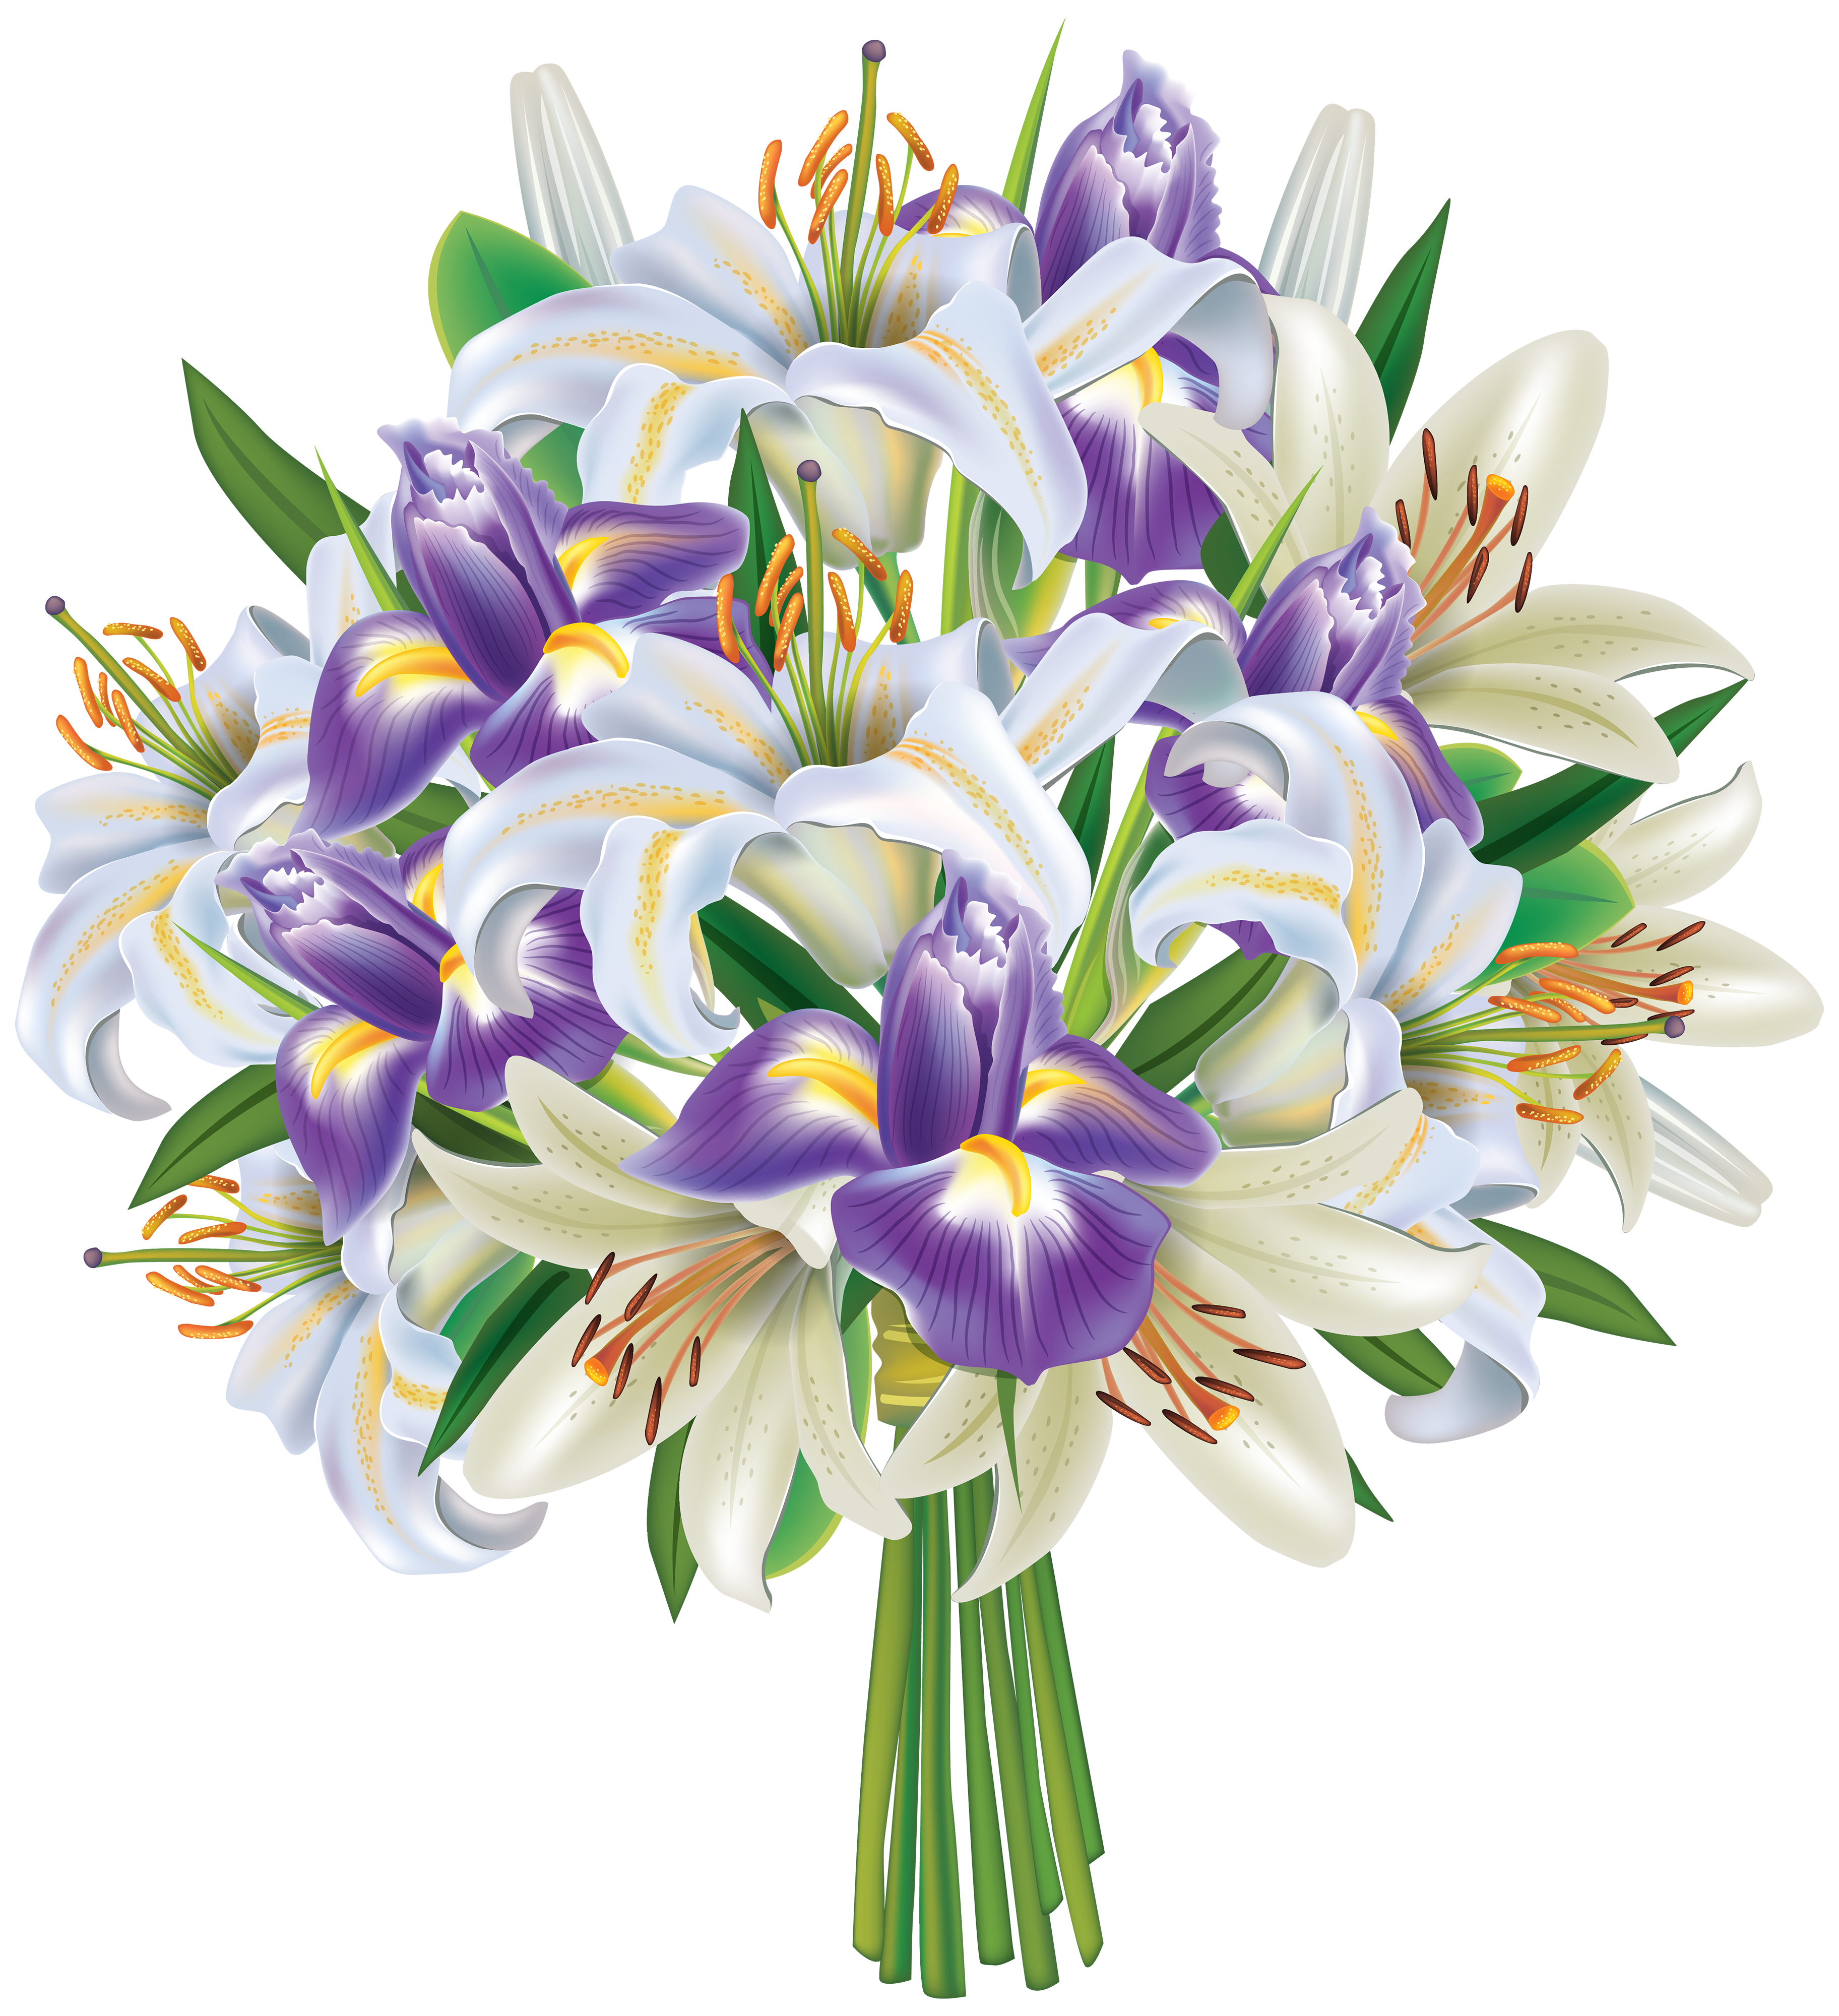 Bouquet Transparent Picture